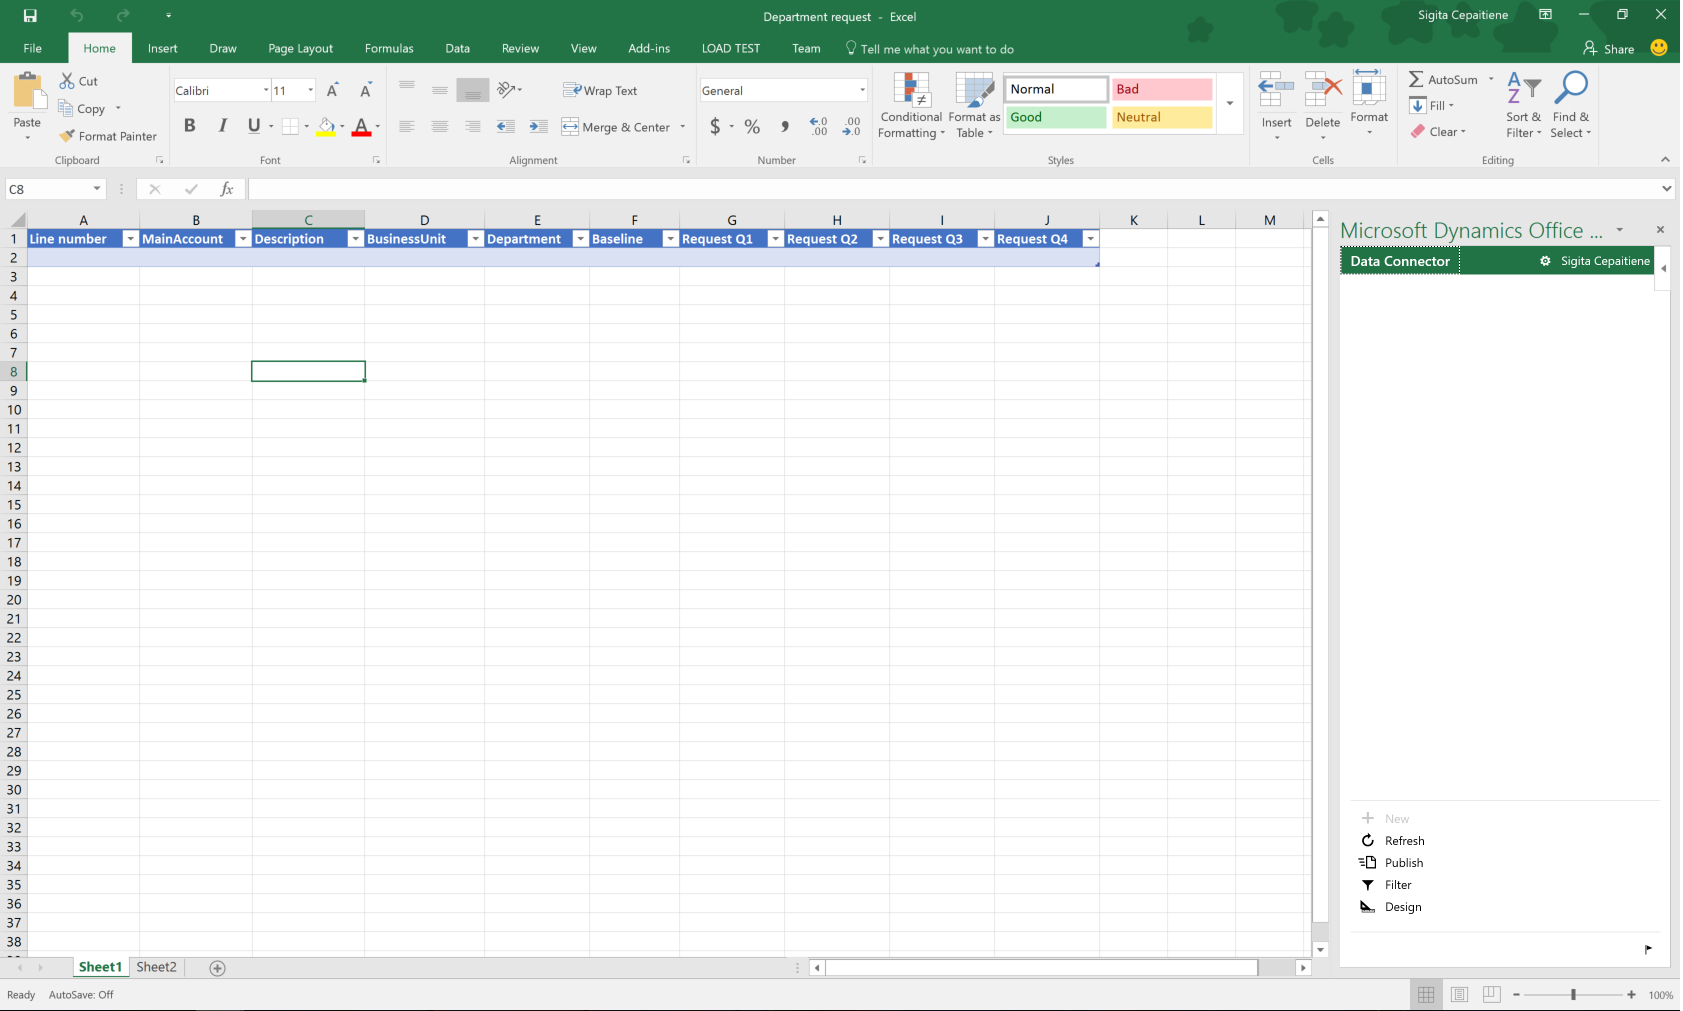 Budget Planning Templates For Excel - Finance & Operations Inside Dynamics Crm Excel Templates